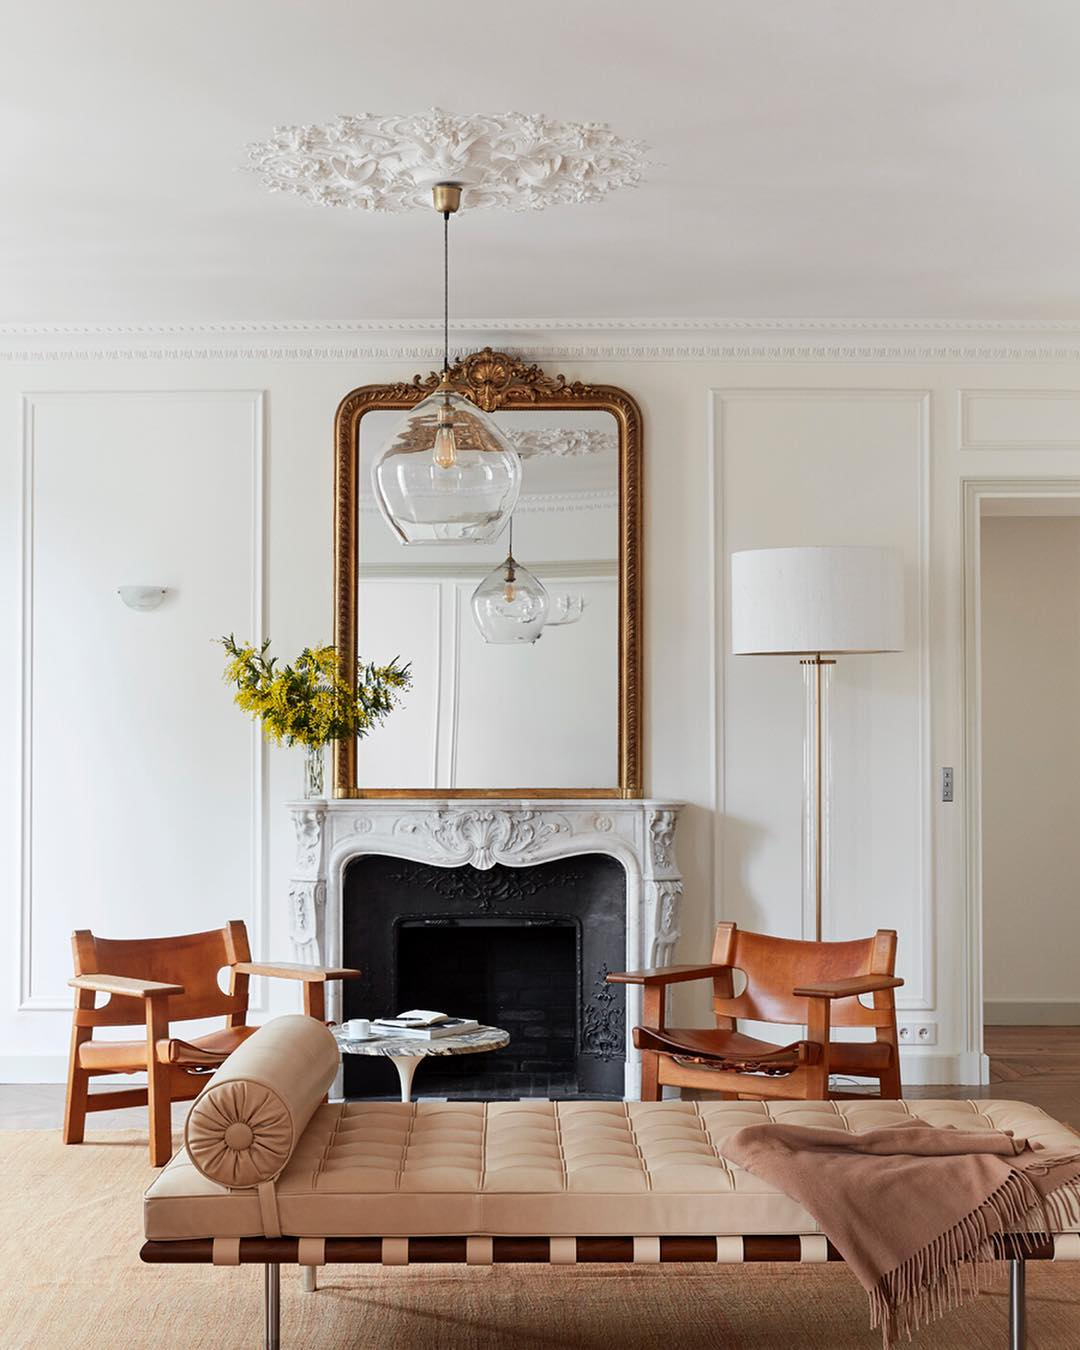 Parisian mirror in Paris apartment with fireplace and beige leather chairs via @abkasha